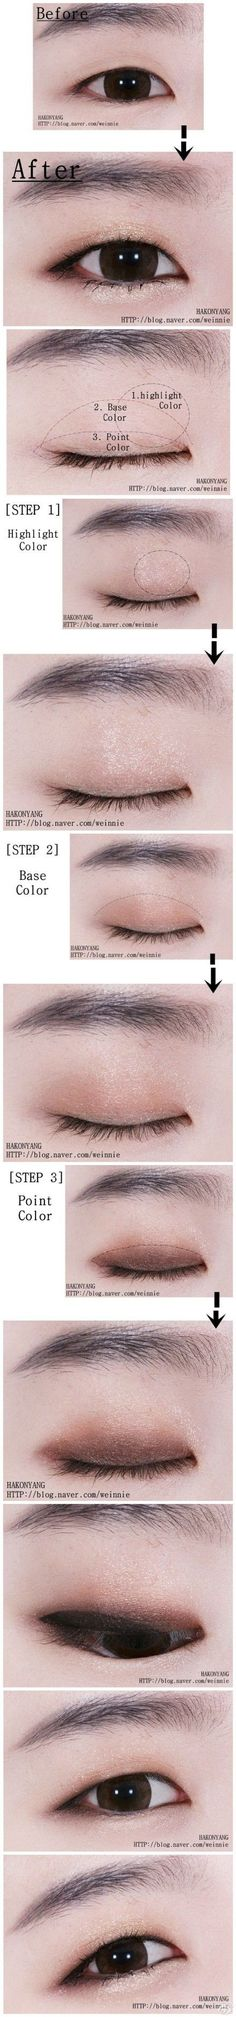 For monolids and hooded eyes!